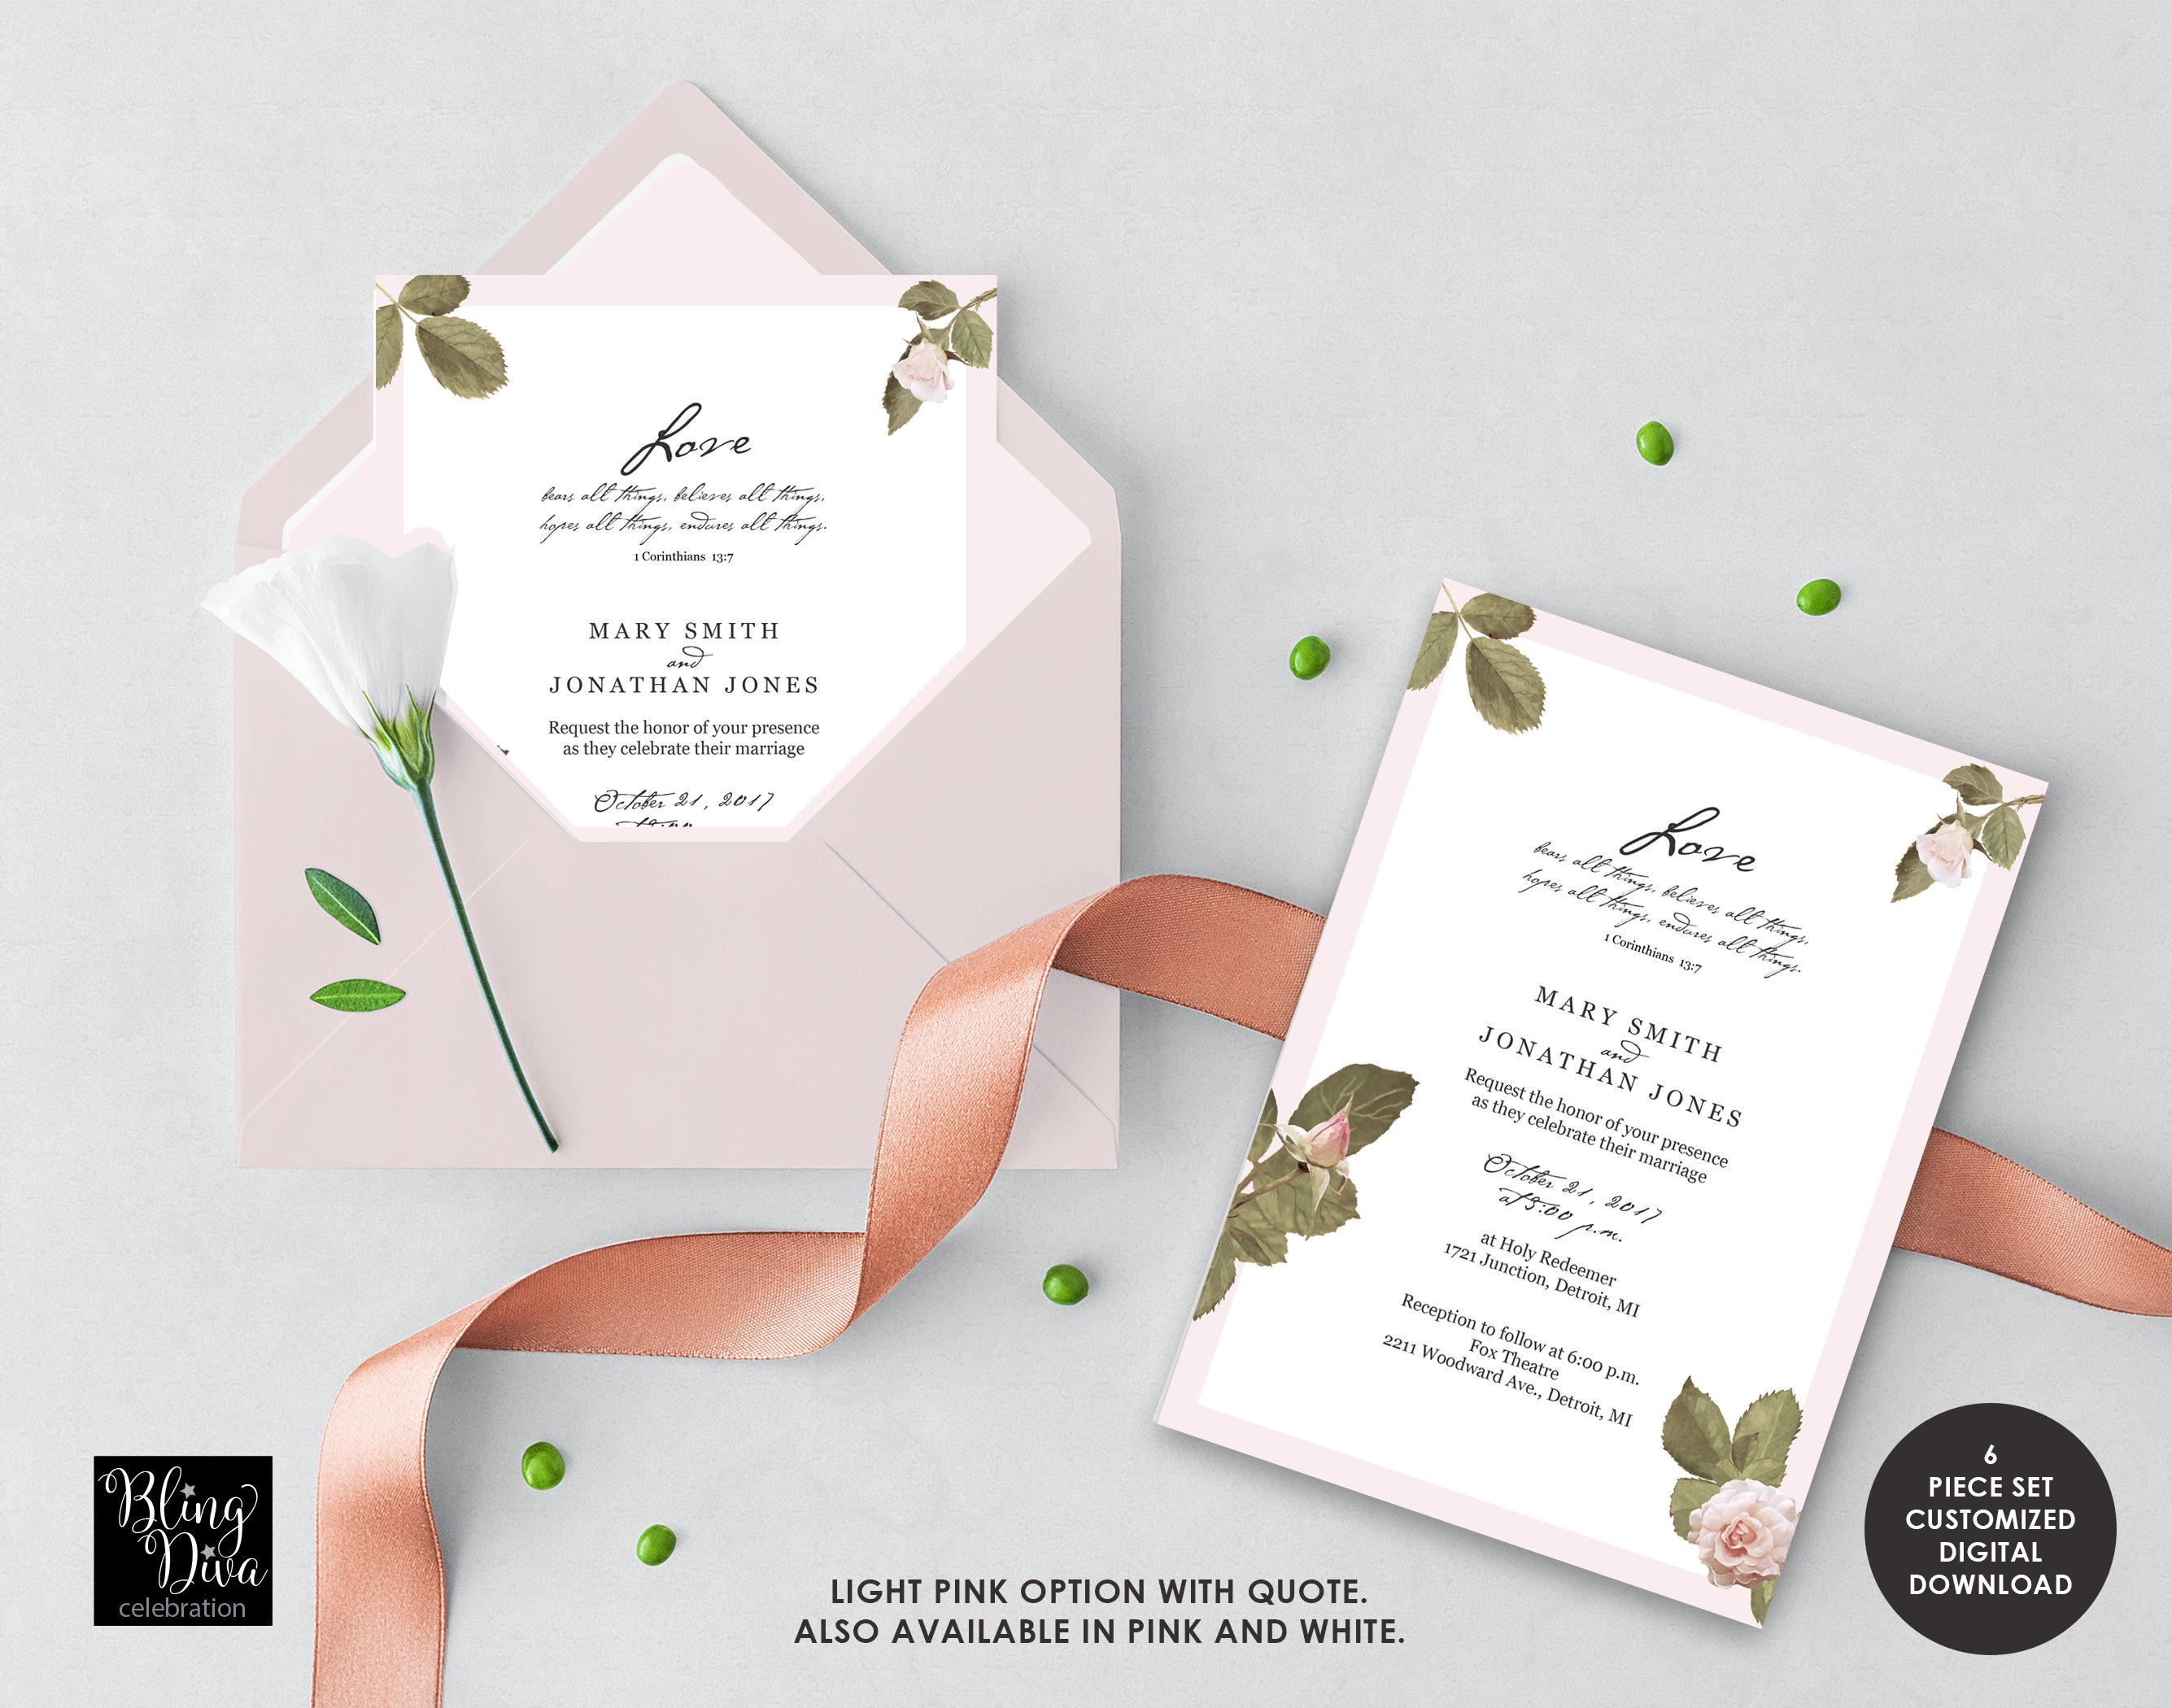 Love Blush Wedding Invitation - French Floral Wedding Invitation - Pink Wedding Invite - Custom Printable Flex Set